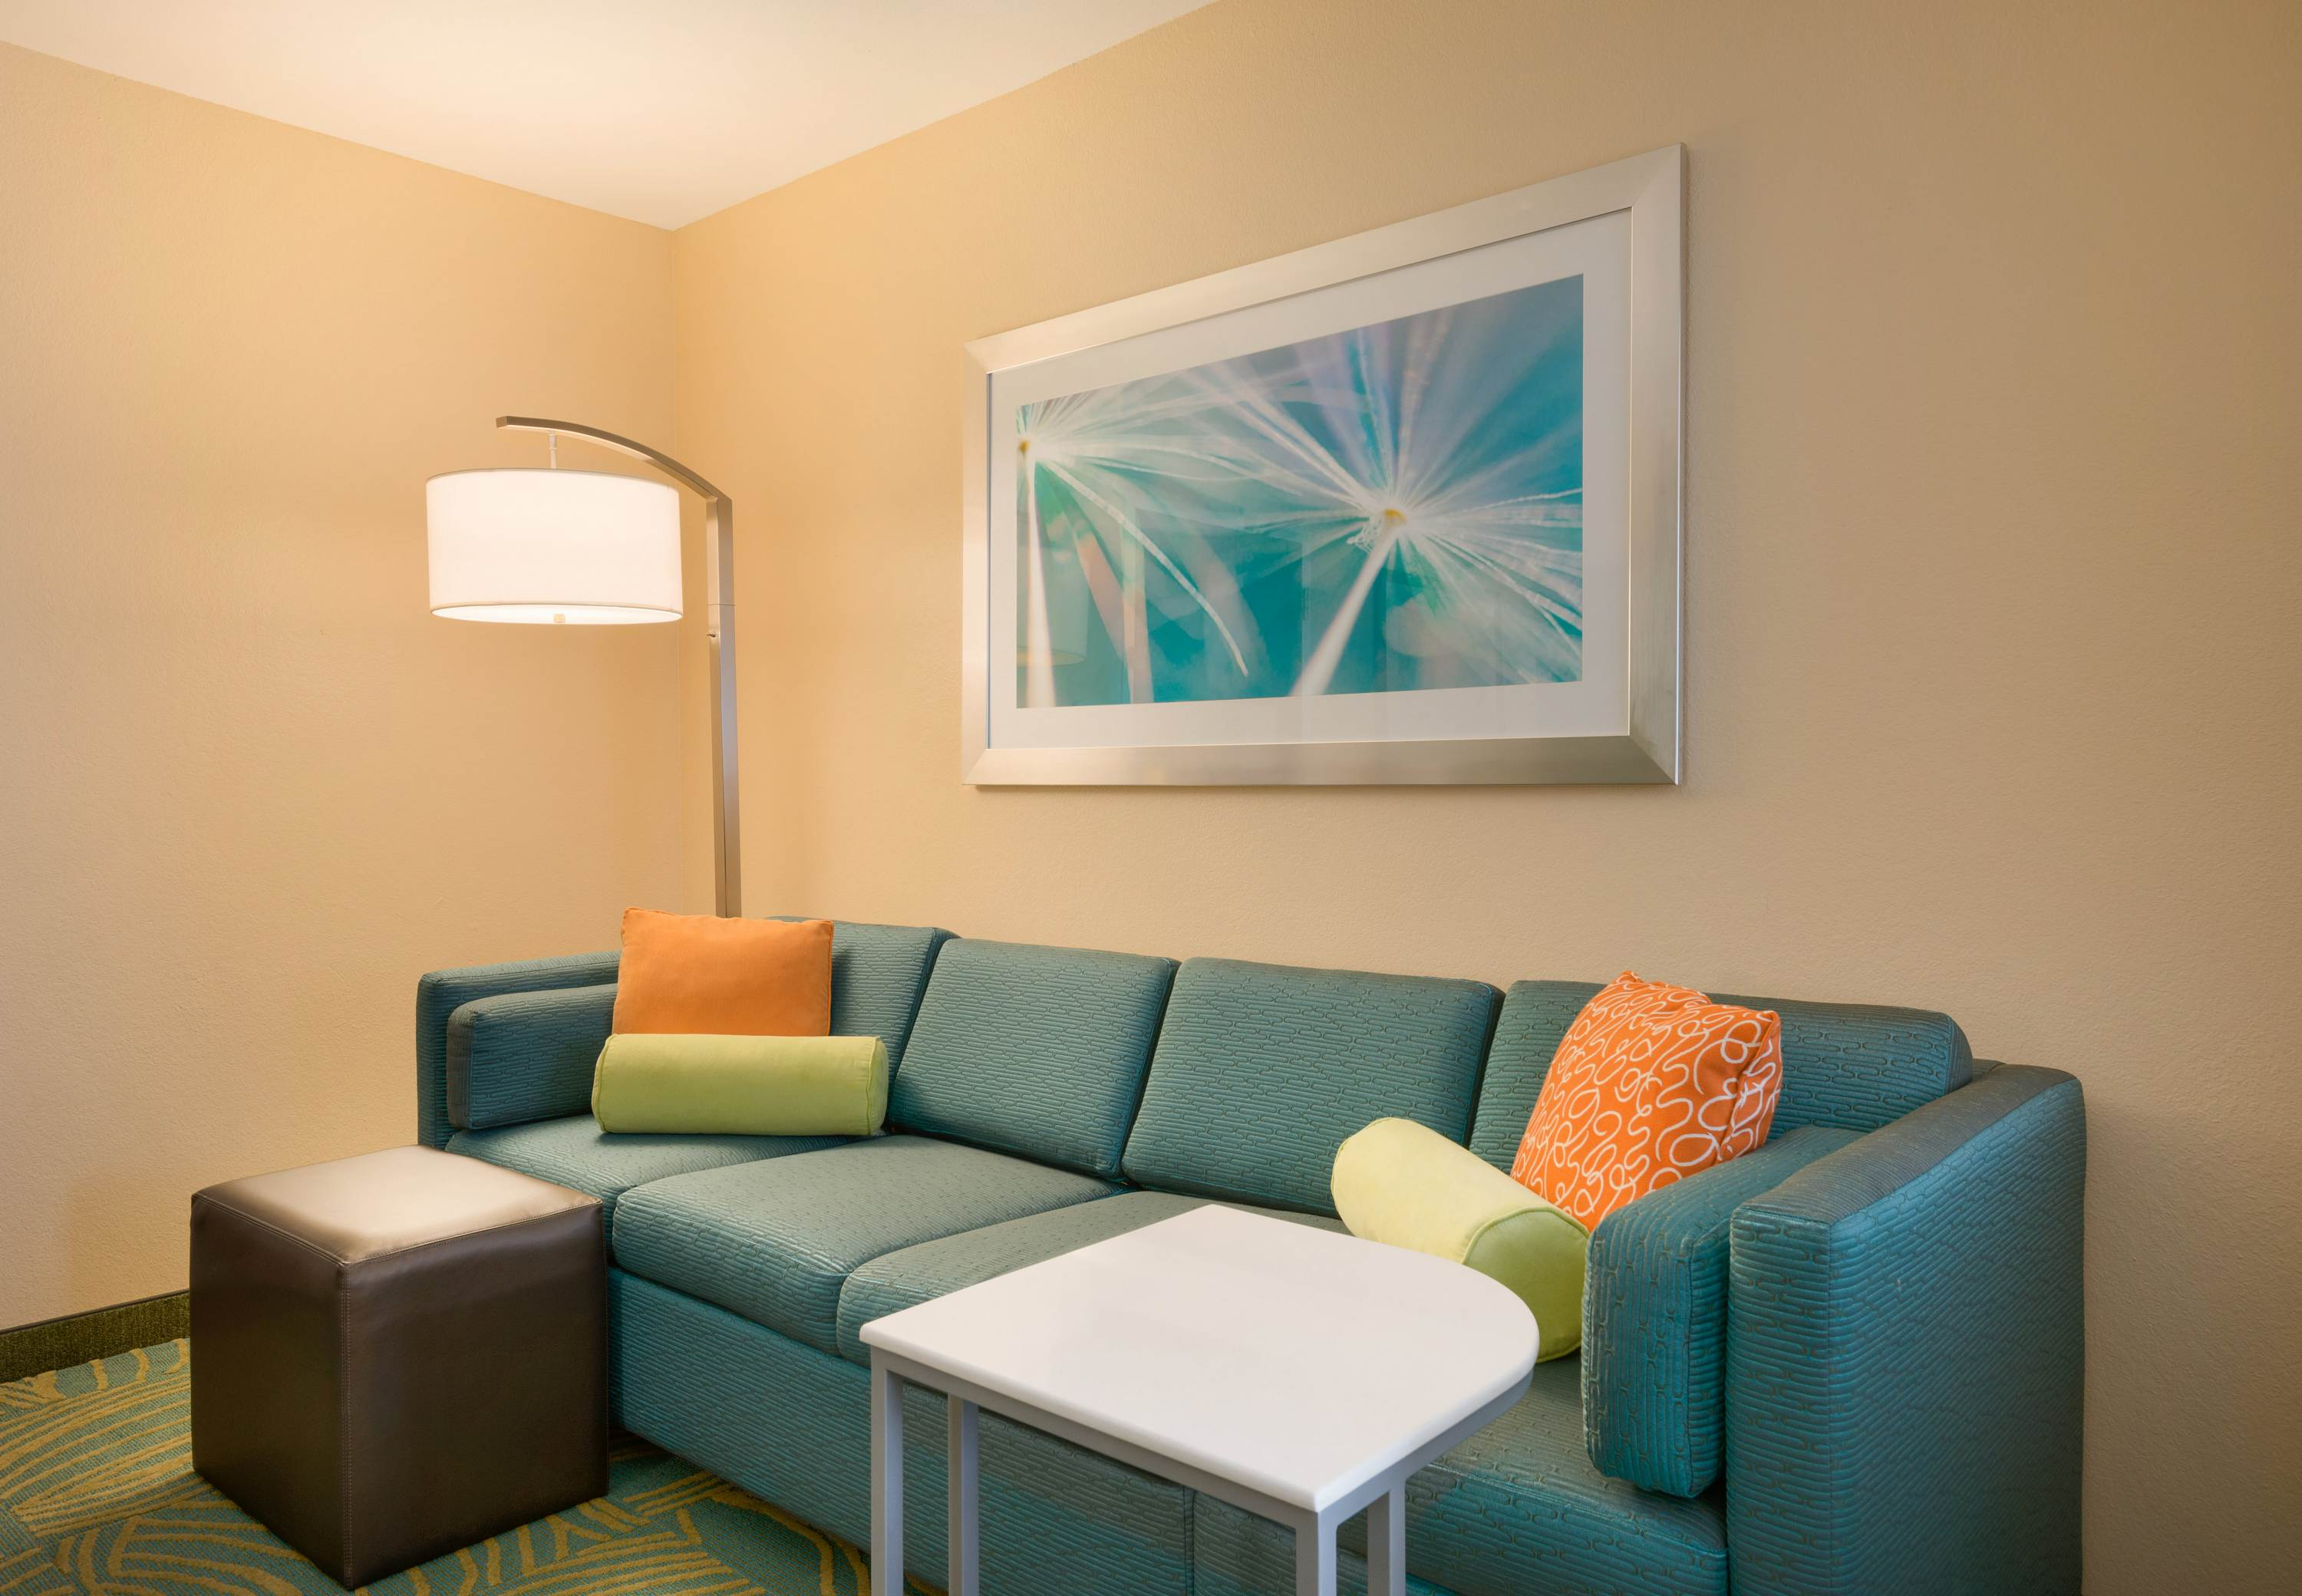 SpringHill Suites by Marriott Little Rock West image 3